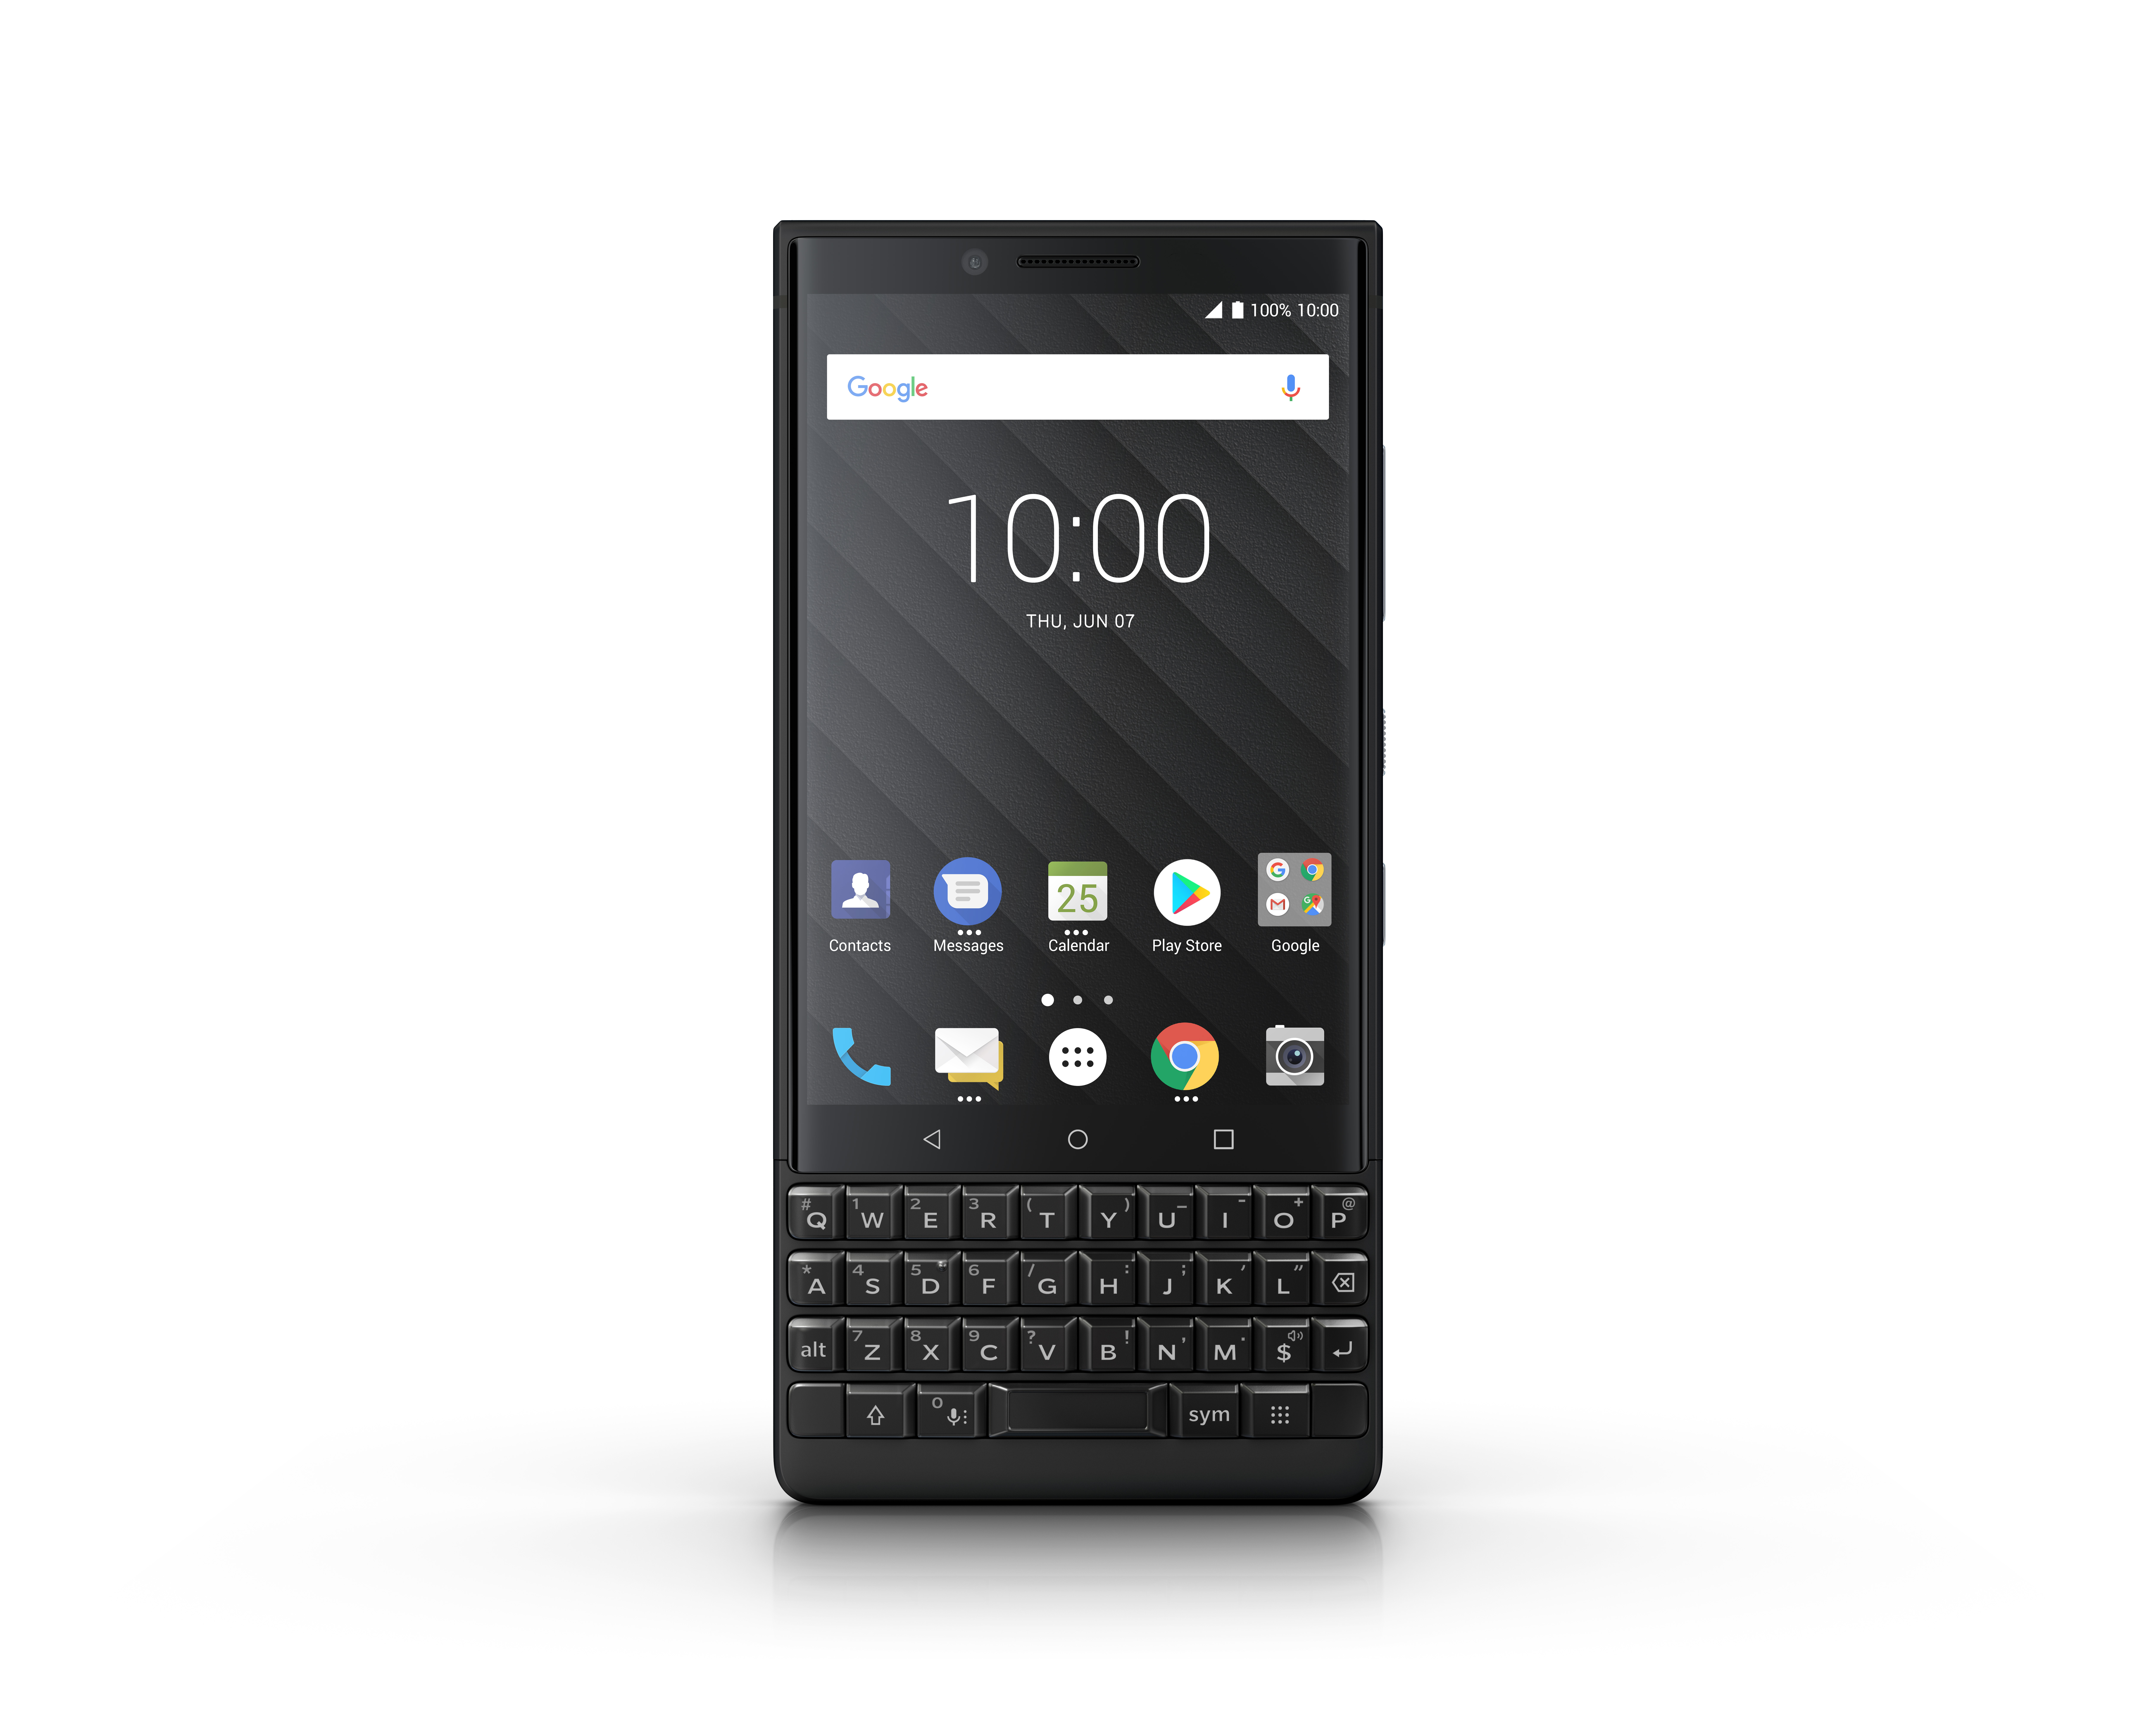 New BlackBerry phone aims to revive faded brand